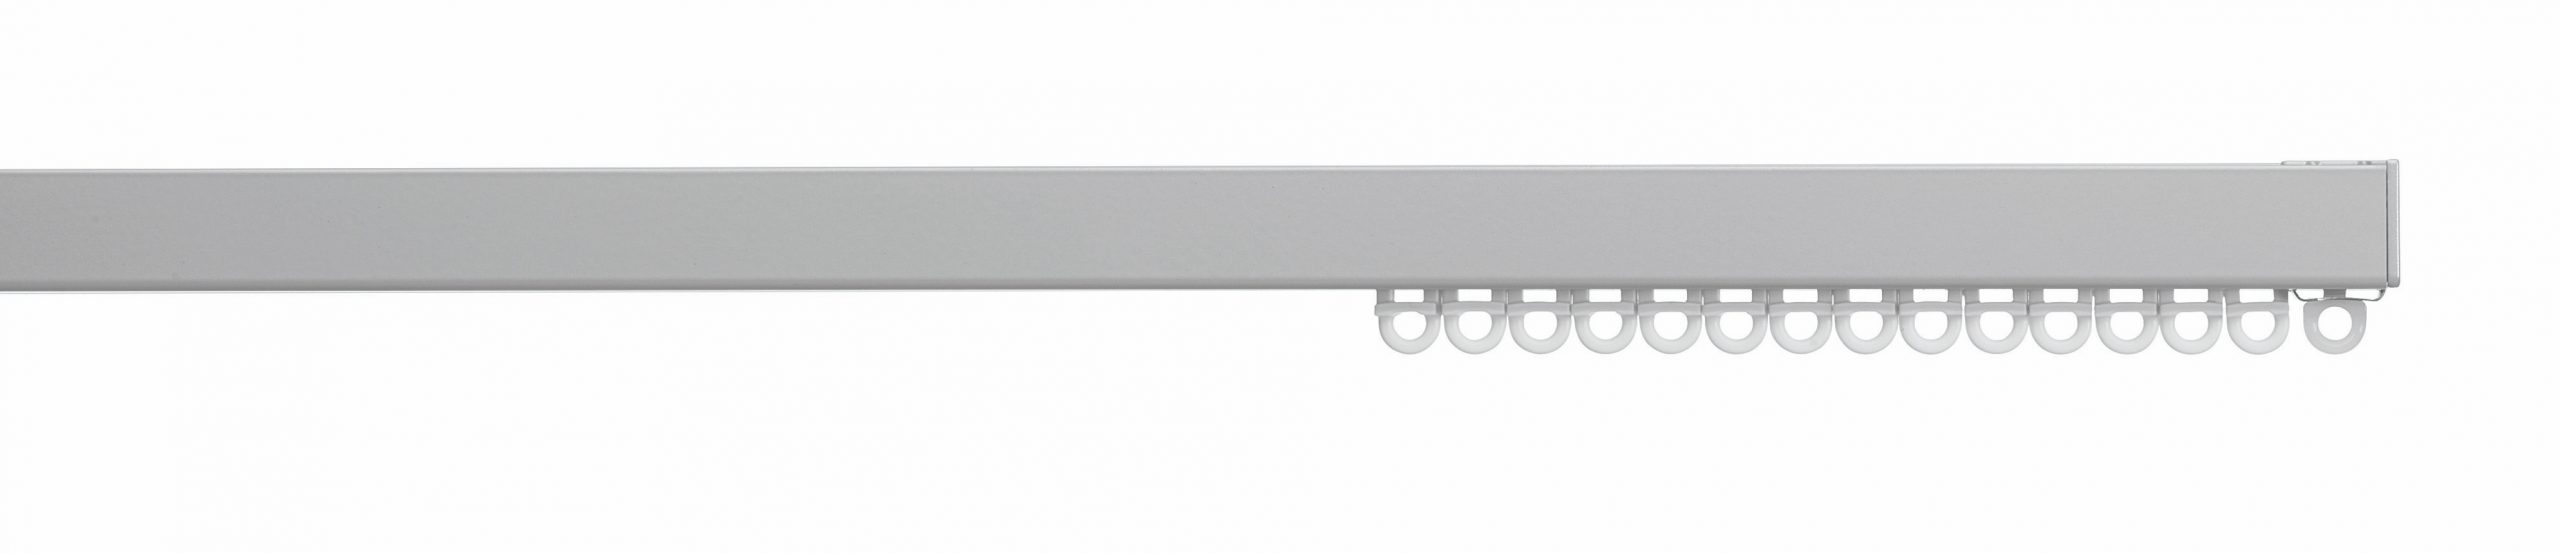 Silent Gliss System 6870 Uncorded  Aluminium  Curtain Track - suitable for wave curtains